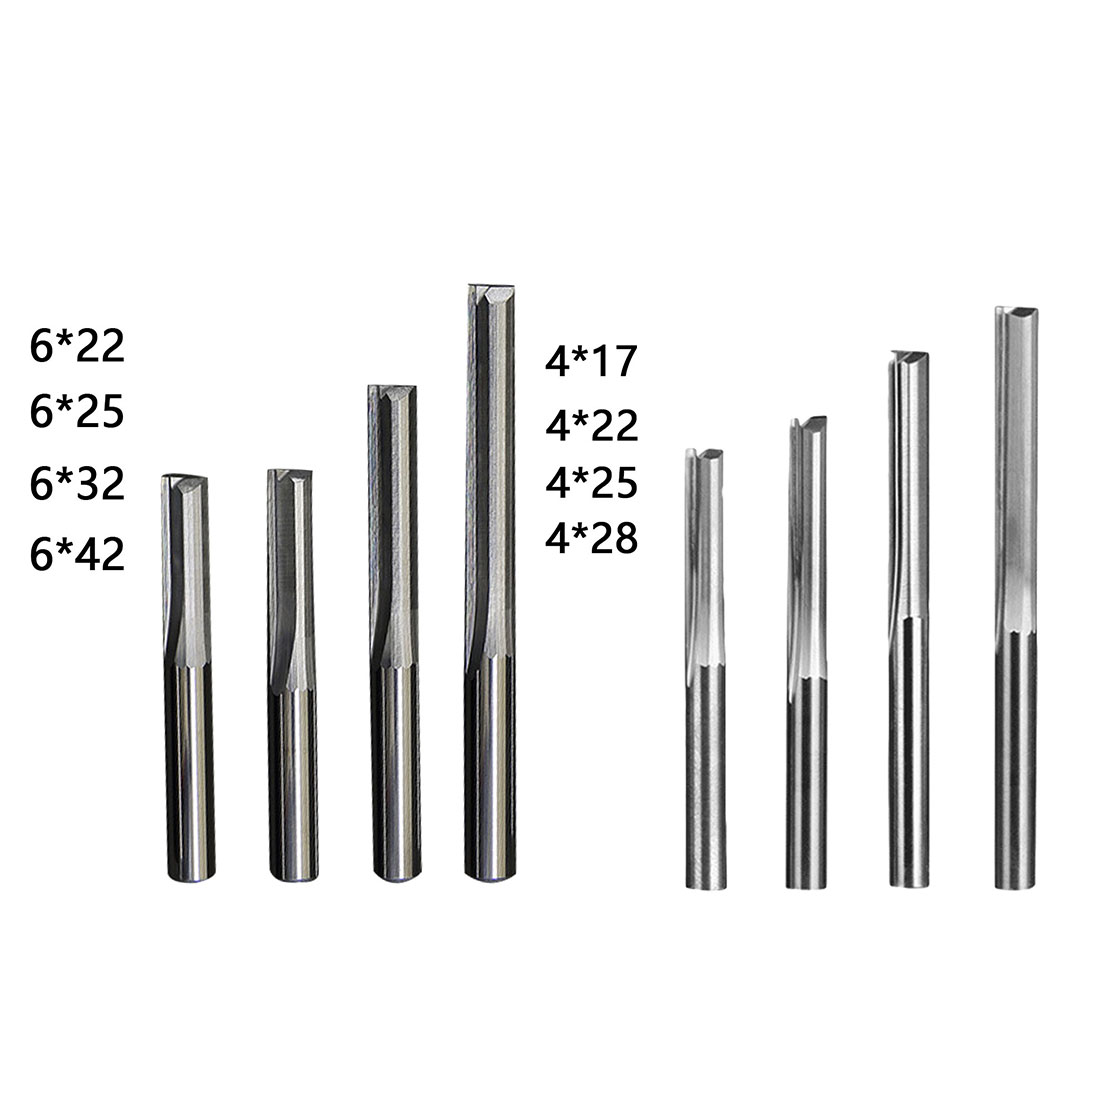 6mm/4mm Shank Two Flutes Straight Router Bits For Wood CNC Straight Engraving Cutters End Mill Tools Milling Cutter